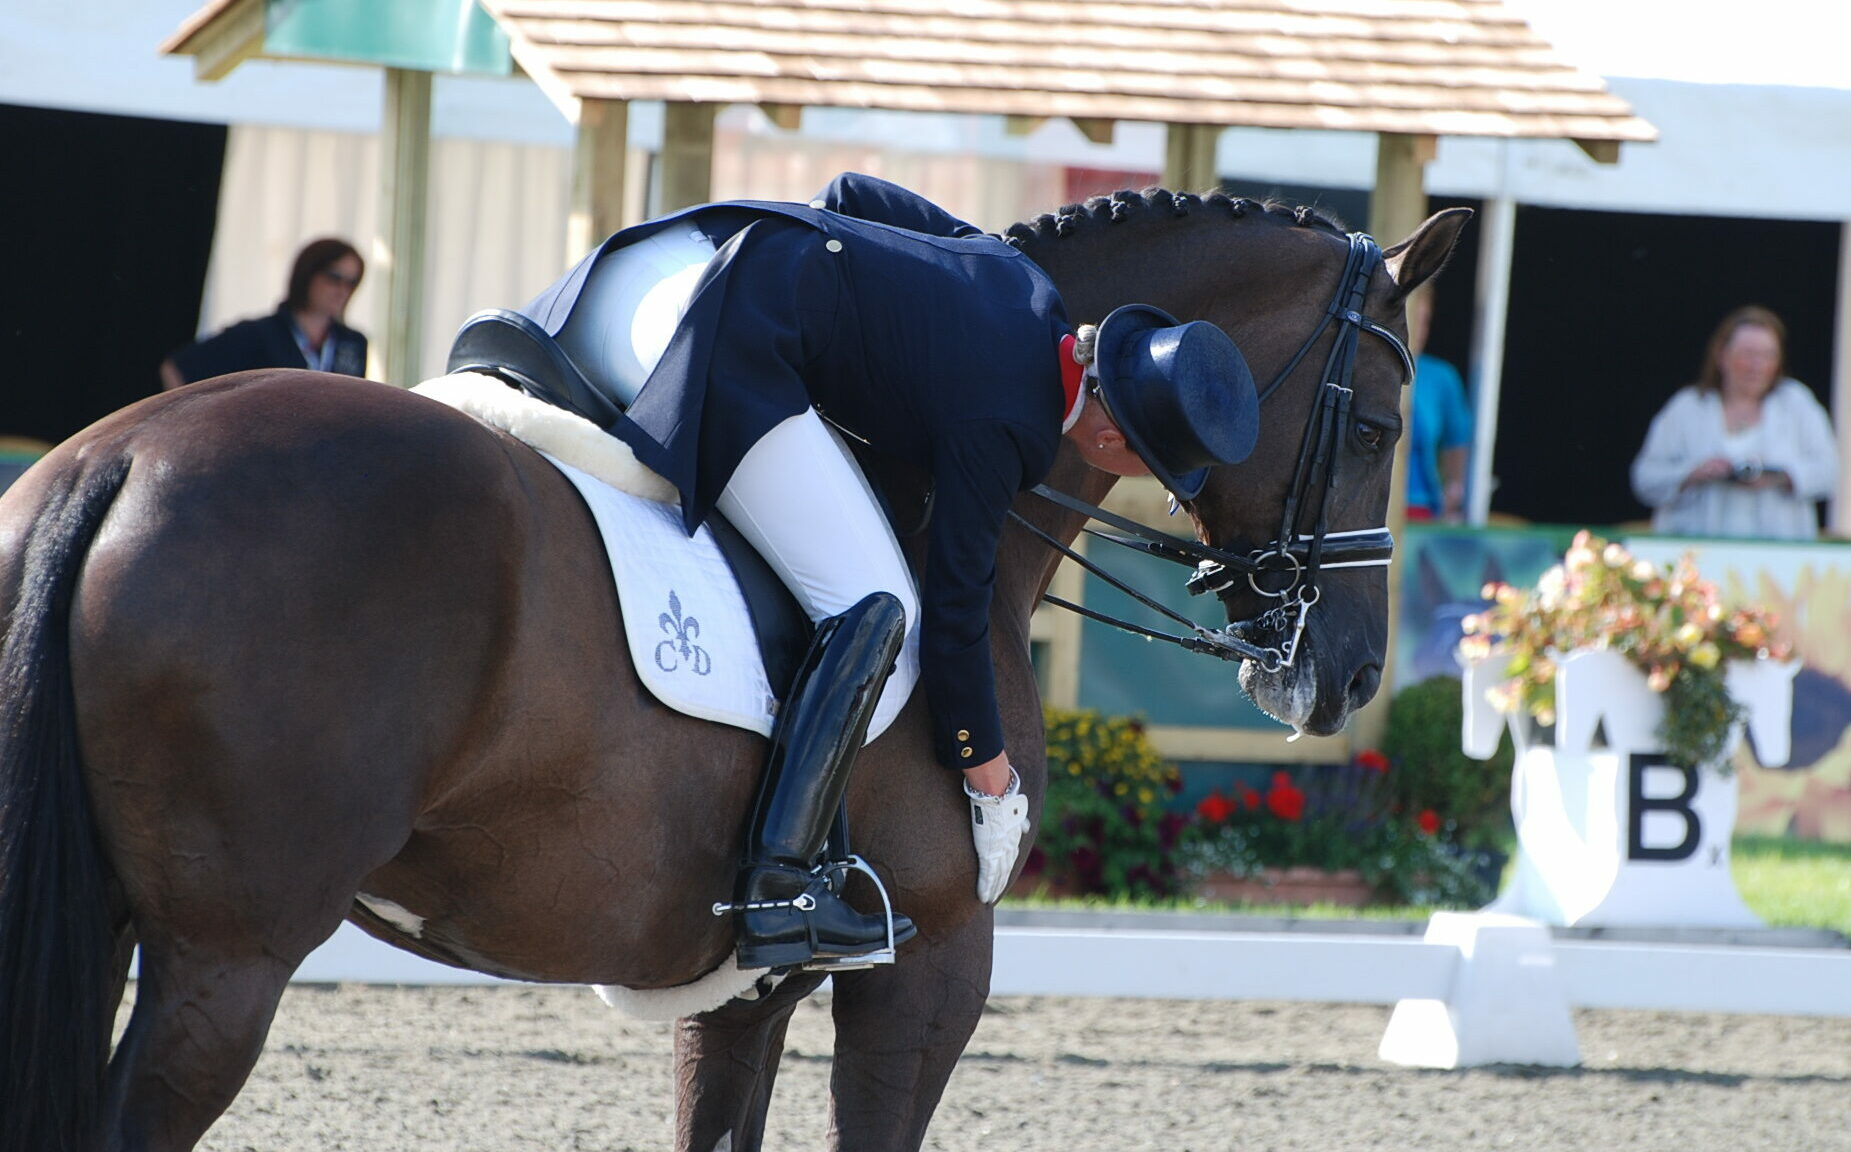 Charlotte Dujardin and Valegro - image by Judy Sharrock on Flickr (CC BY-ND 2.0) - Globetrotting horse riding holidays